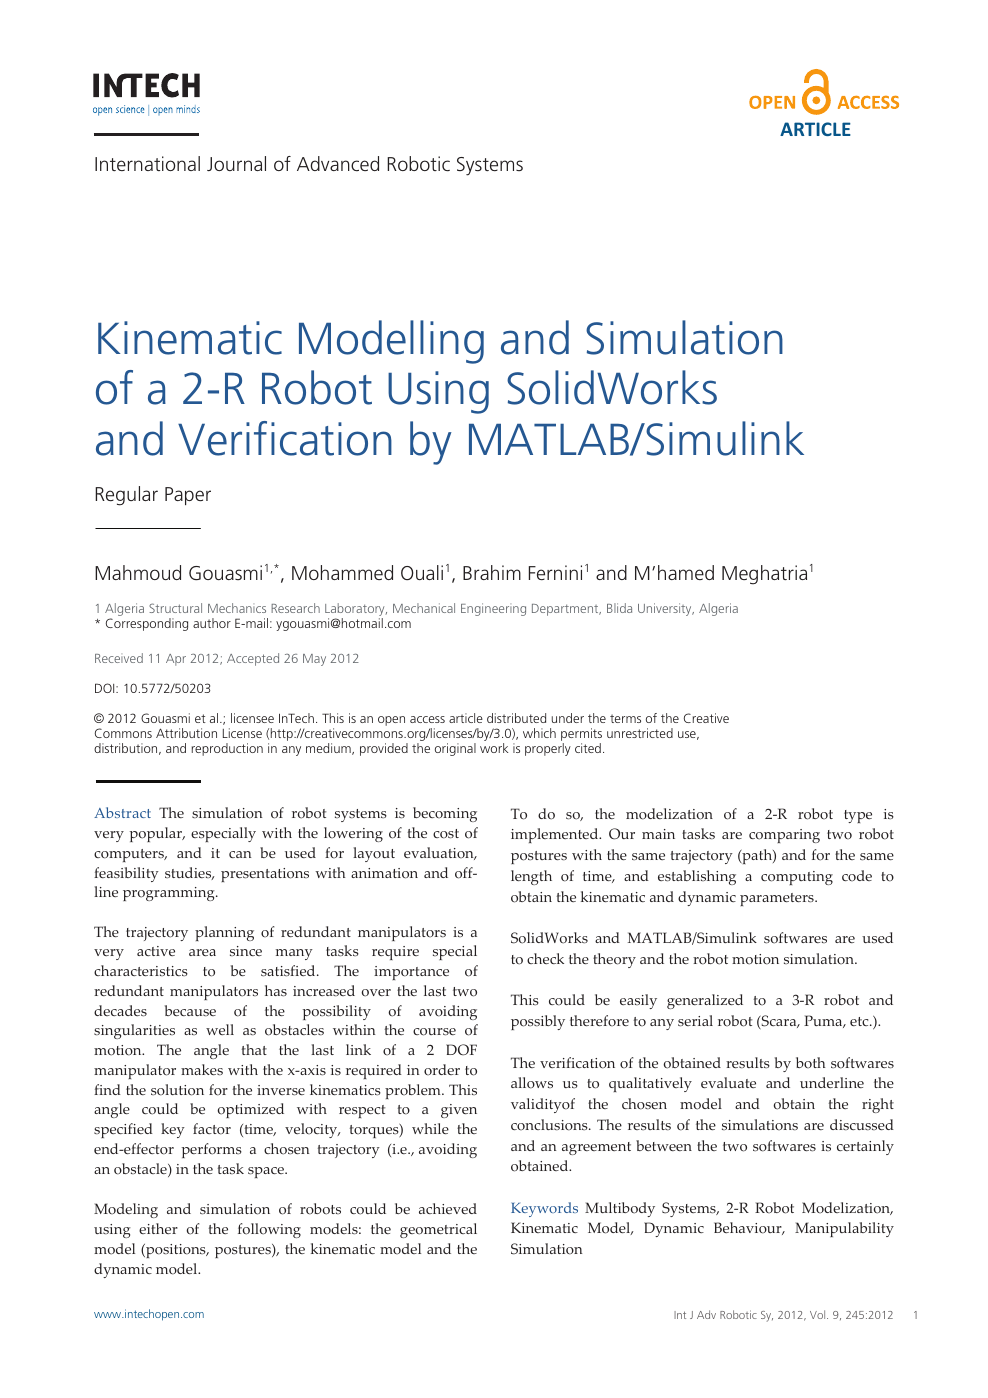 Kinematic Modelling and Simulation of a 2-R Robot Using